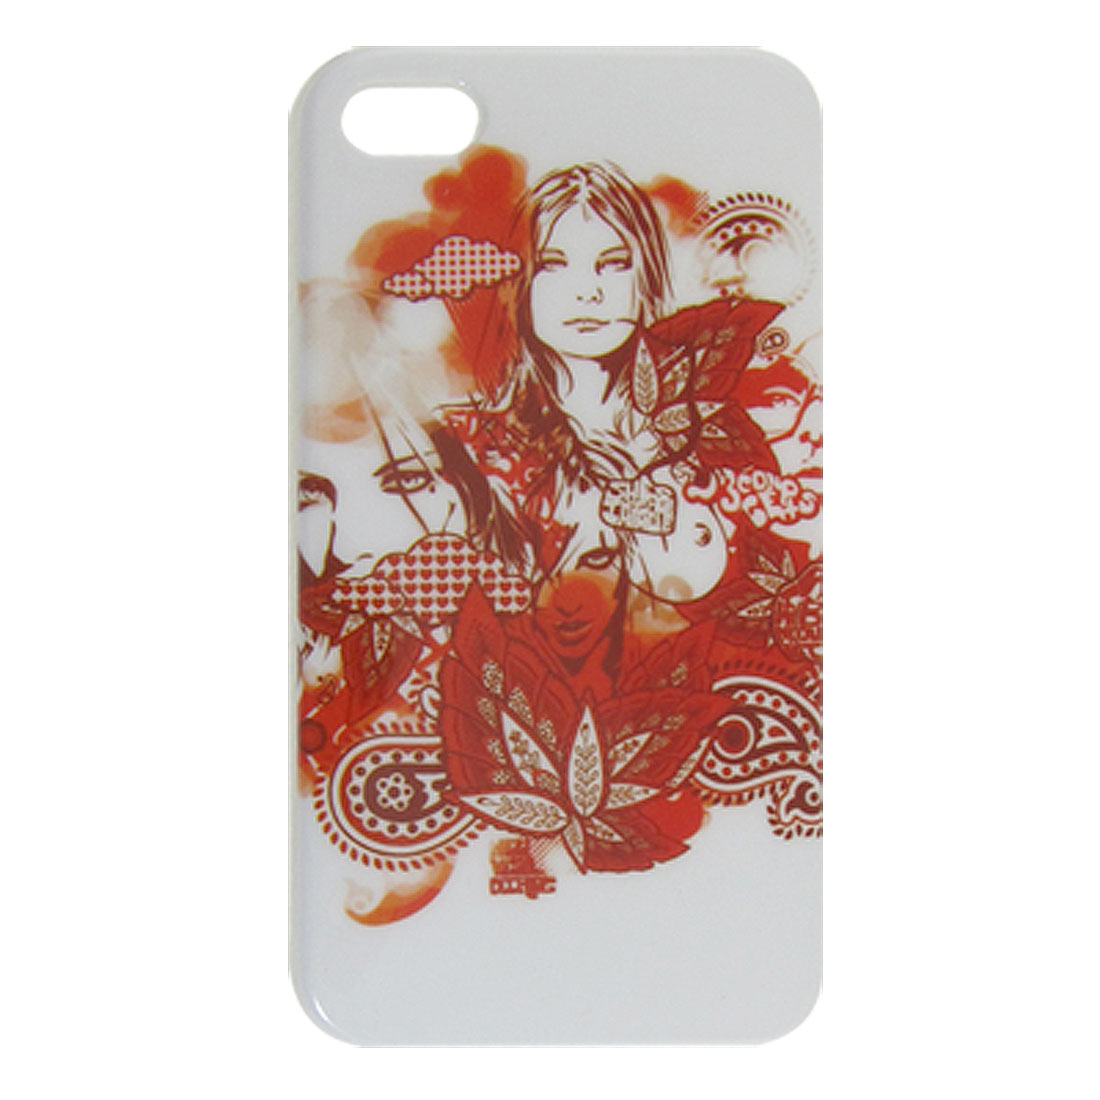 Woman Print Hard Plastic IMD Back Shell Cover Red White for iPhone 4 4S